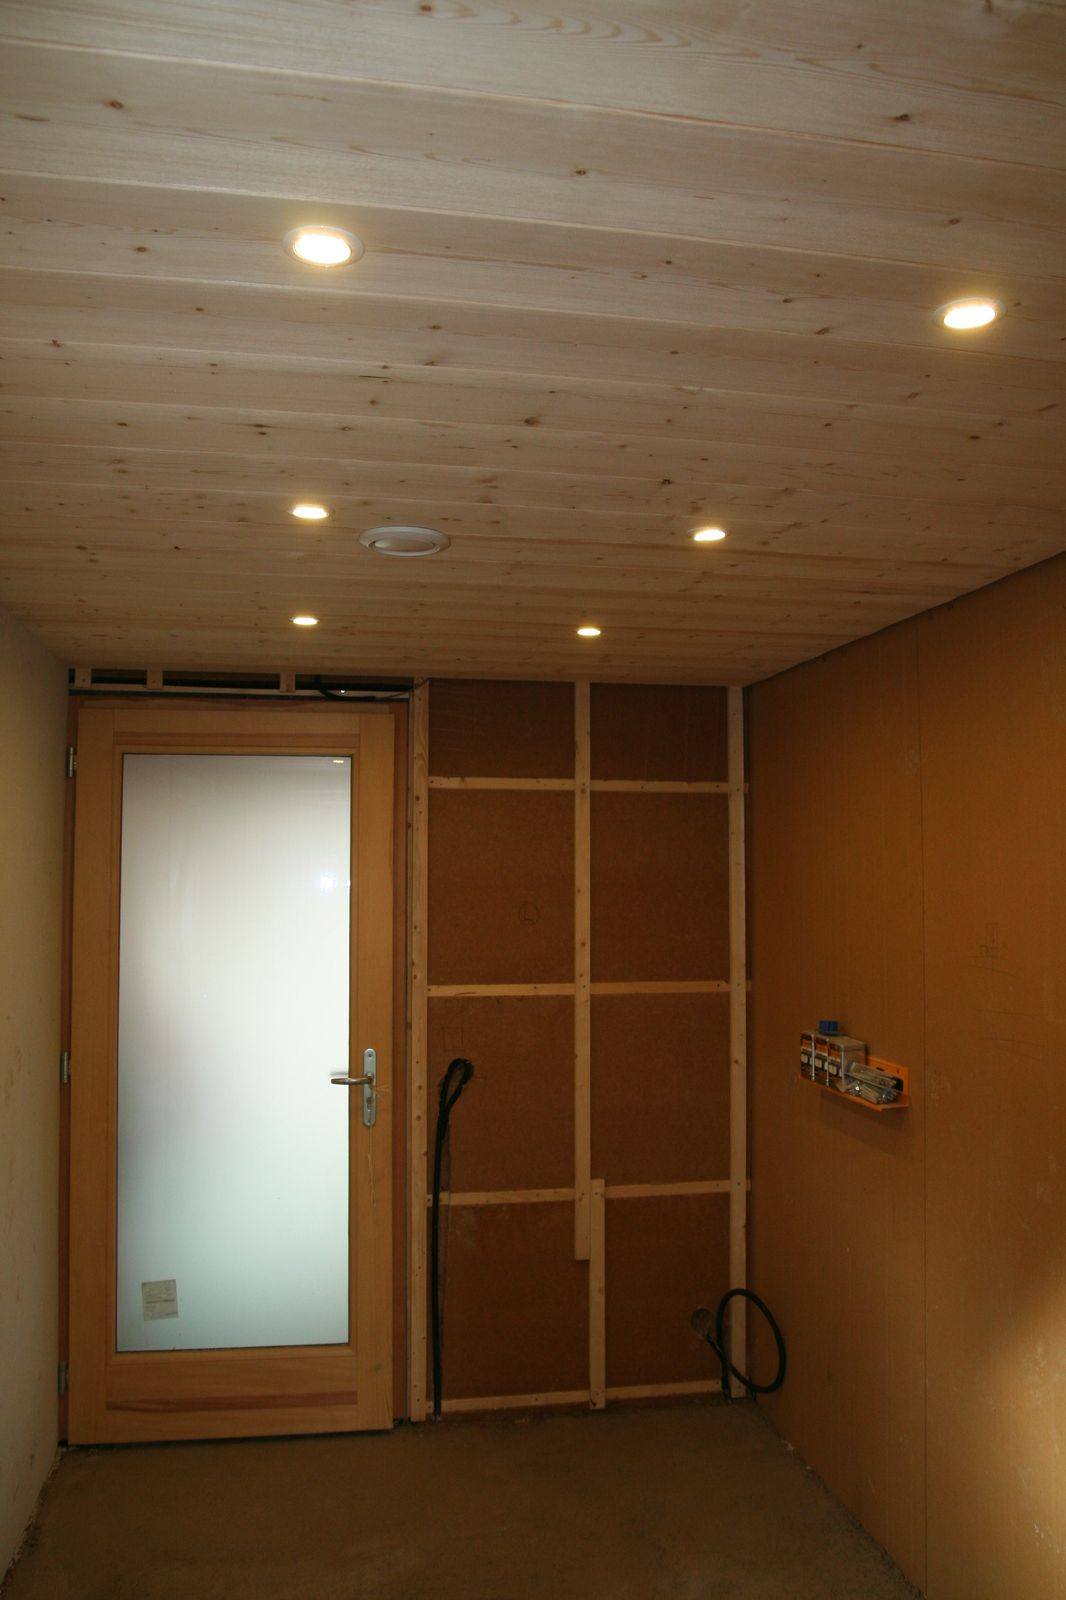 Mobeco - Comment installer des spots led au plafond ...